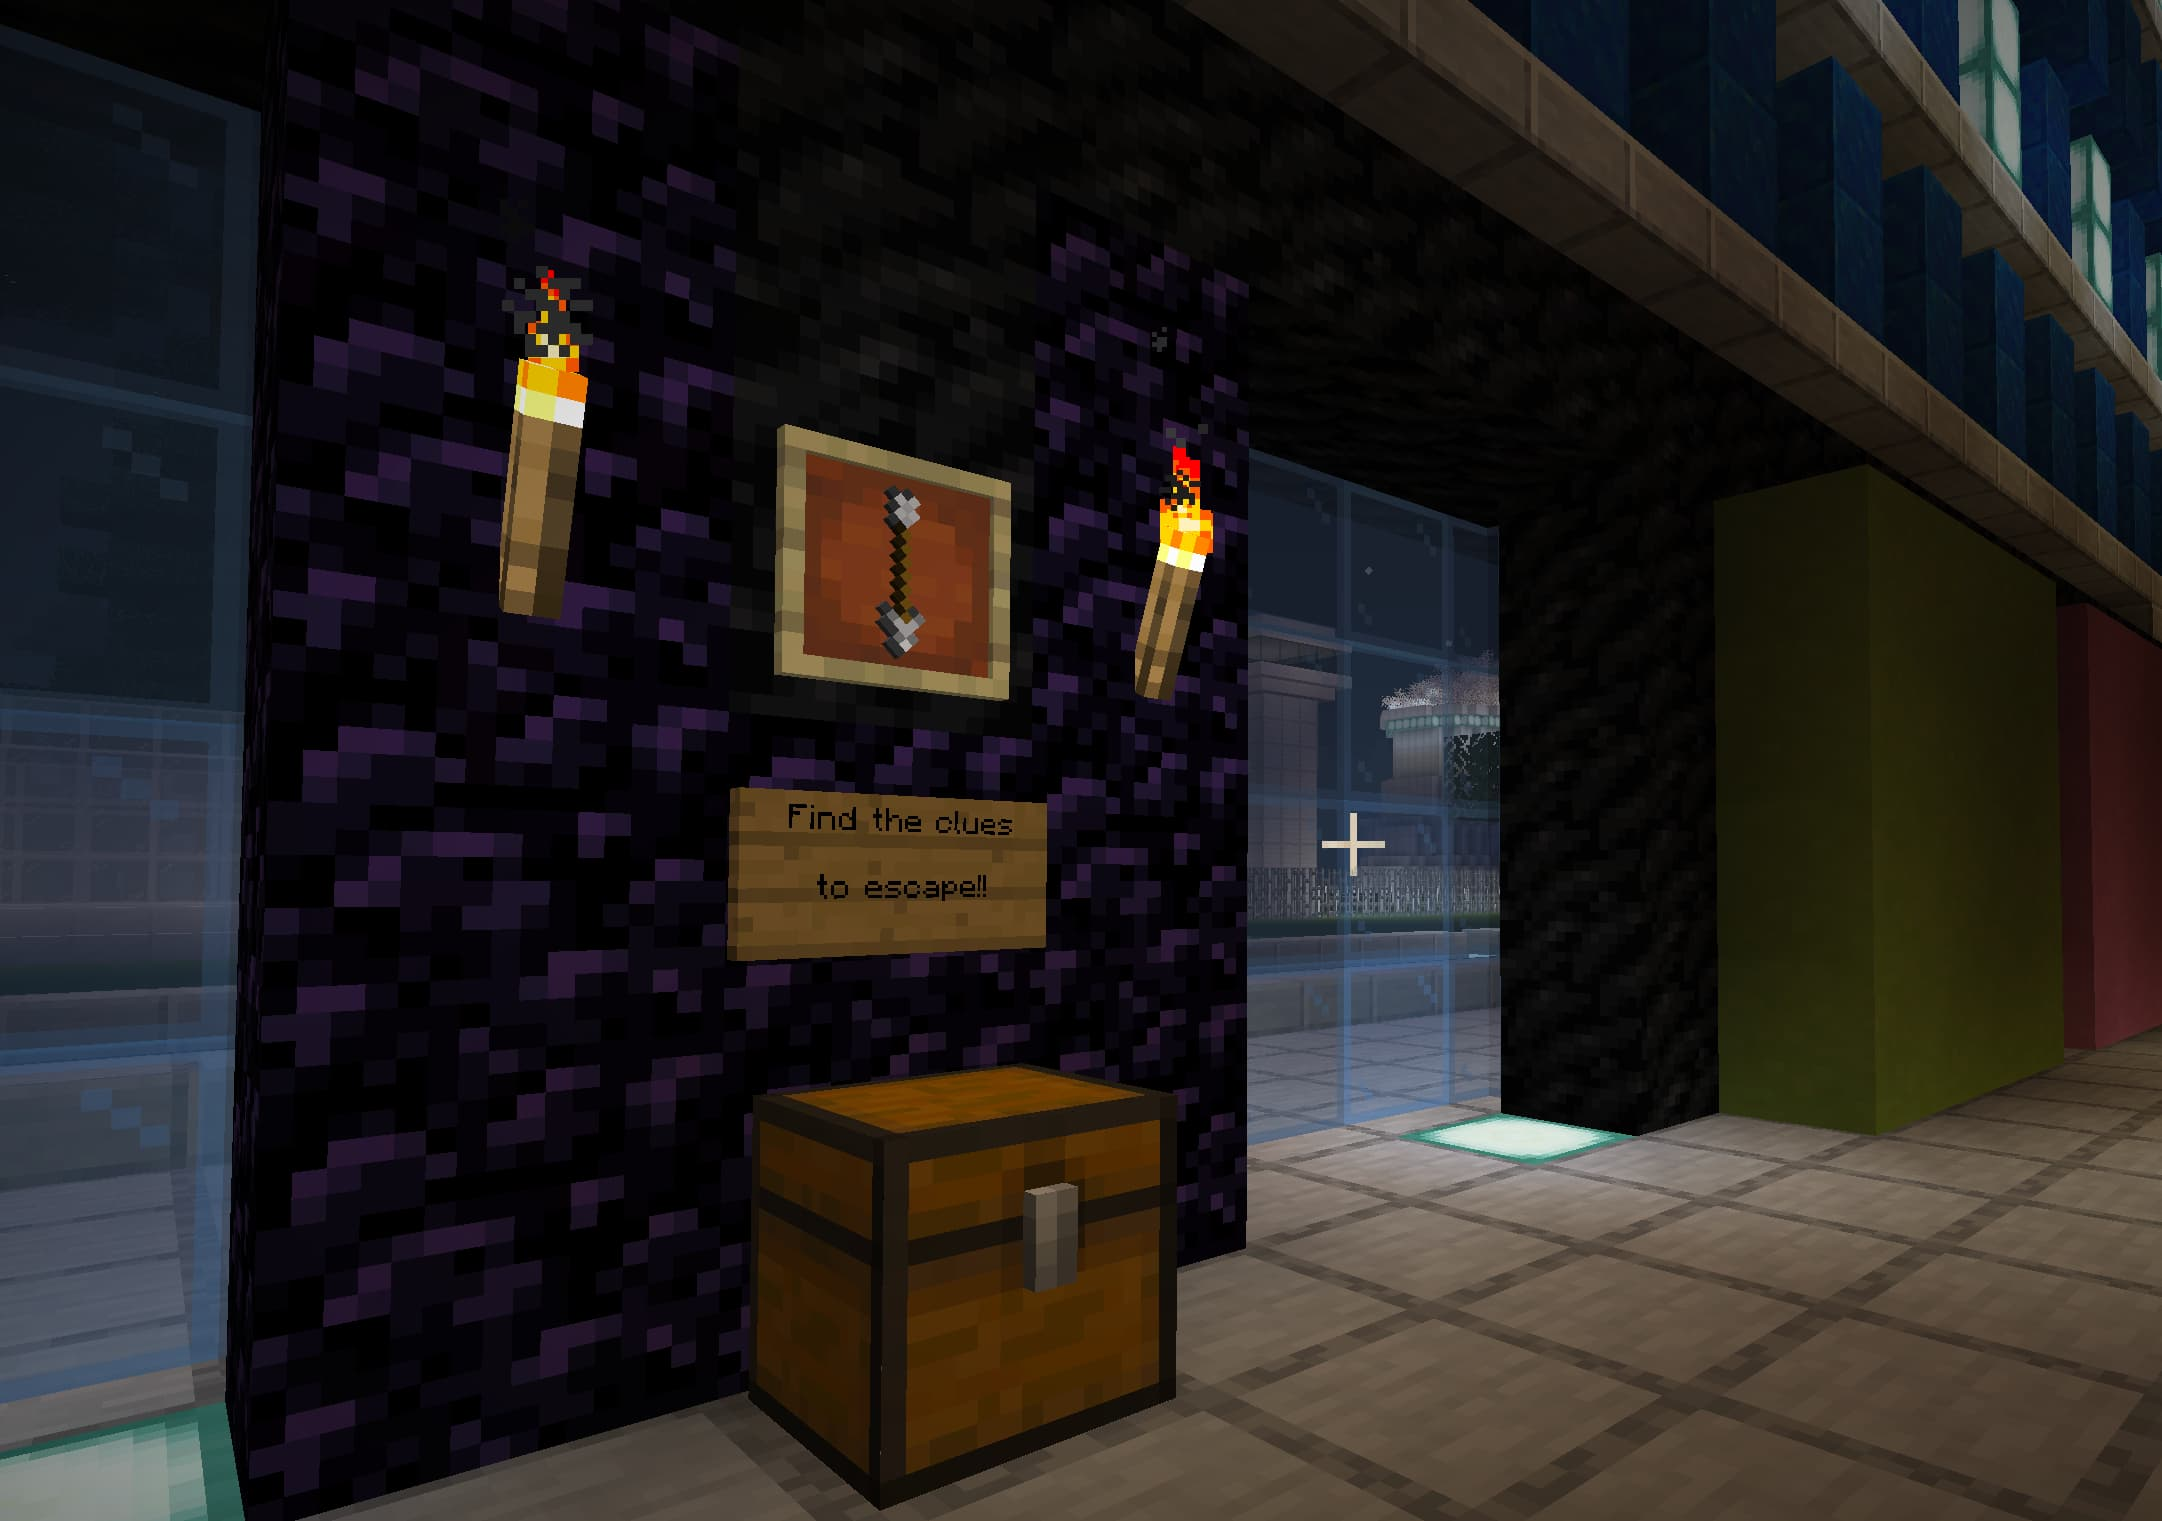 Jump into a world of mystery while playing a series of mini games in Minecraft!